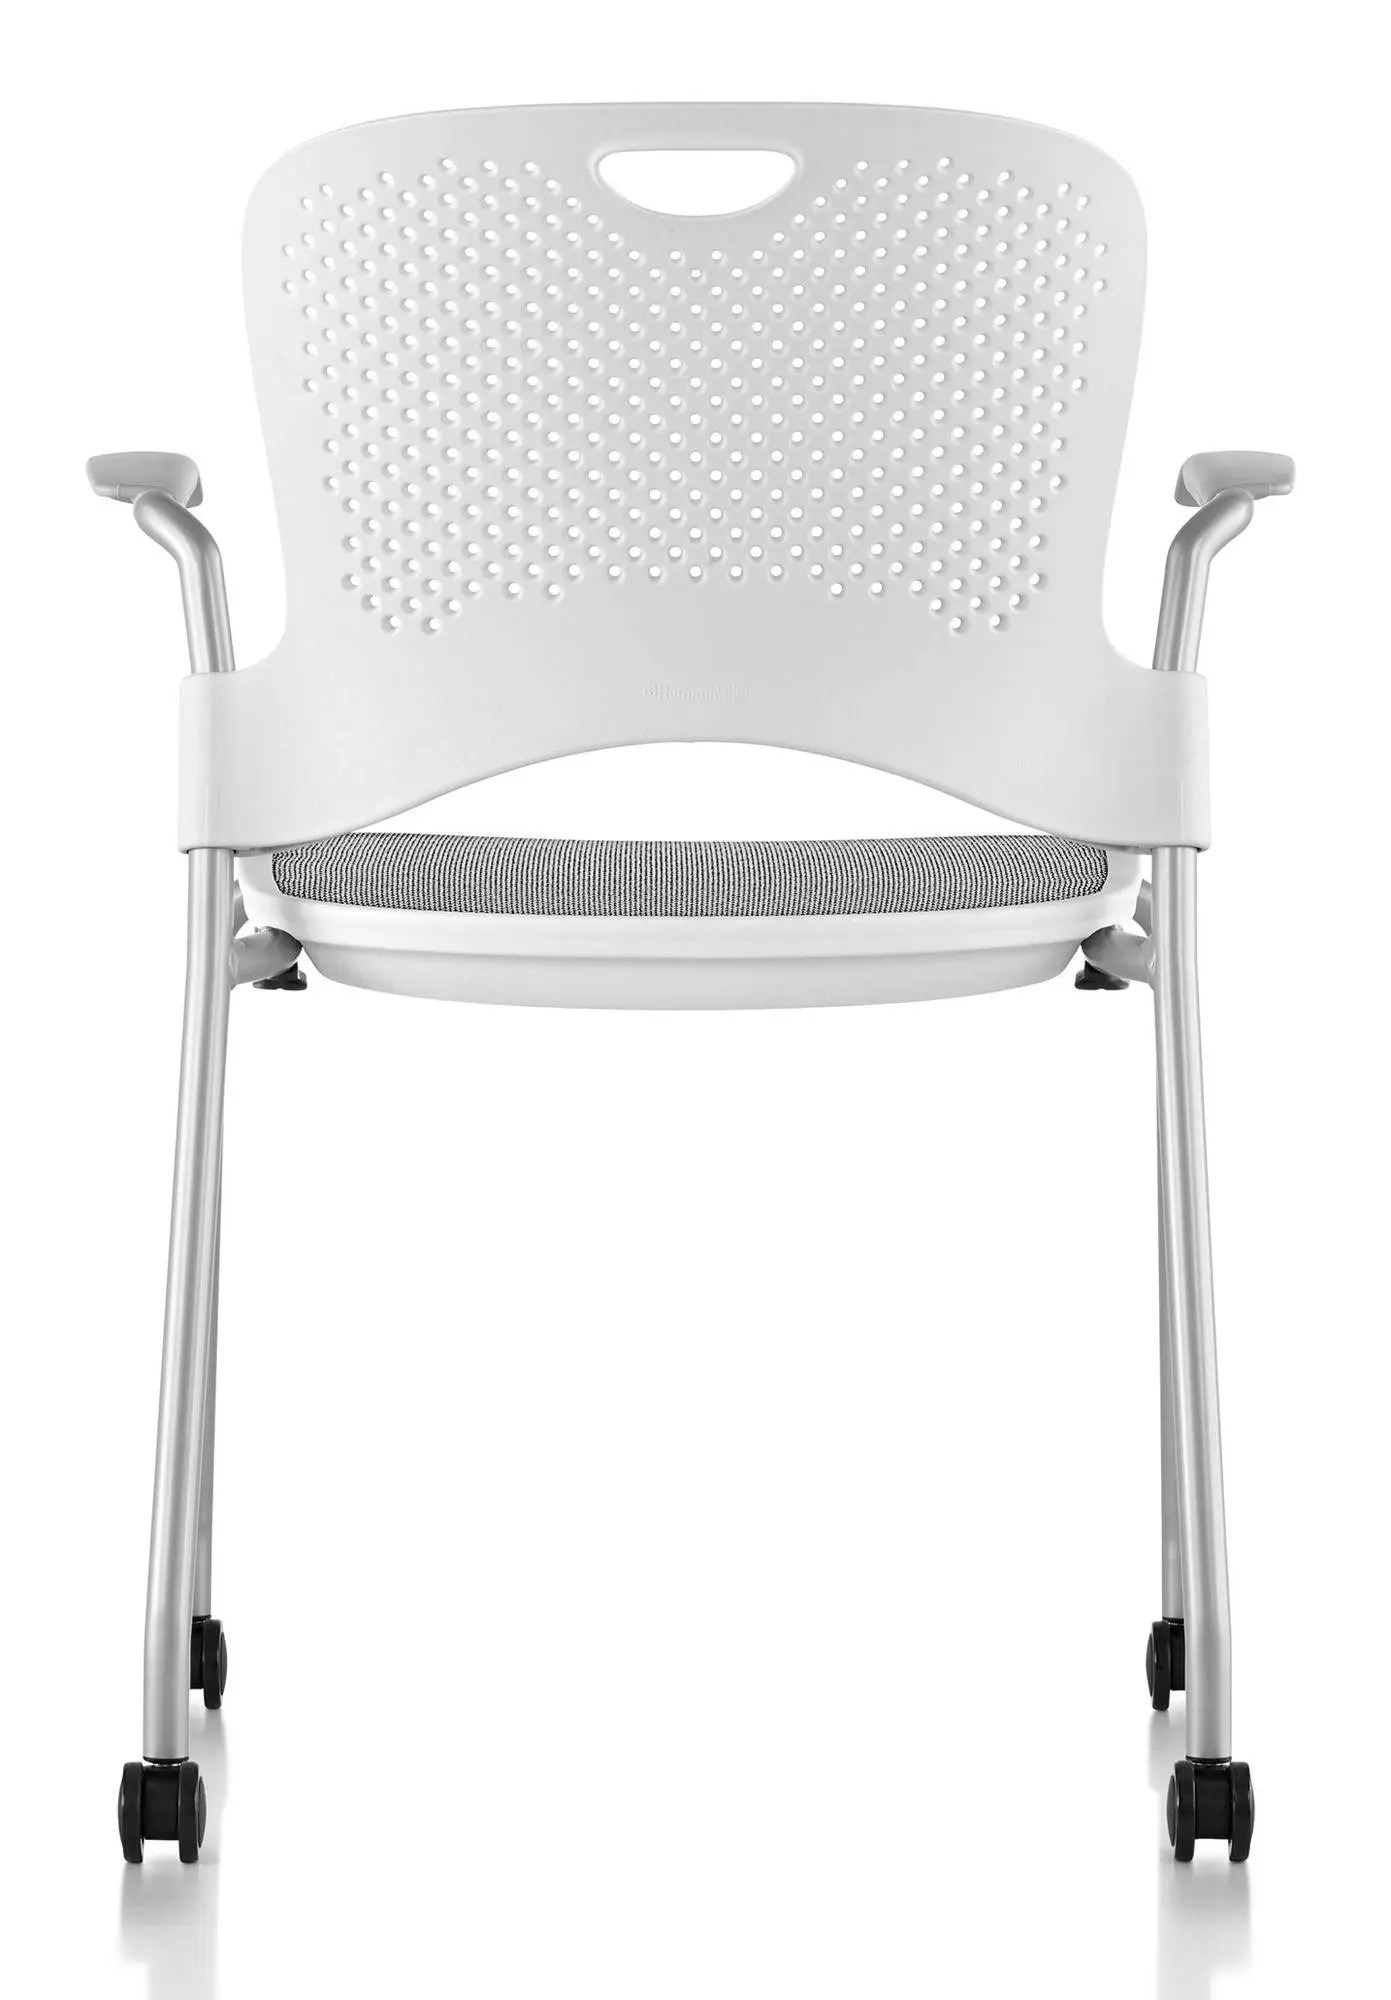 Caper Chair Herman Miller Caper Stacking Chair With Flexnet Gr